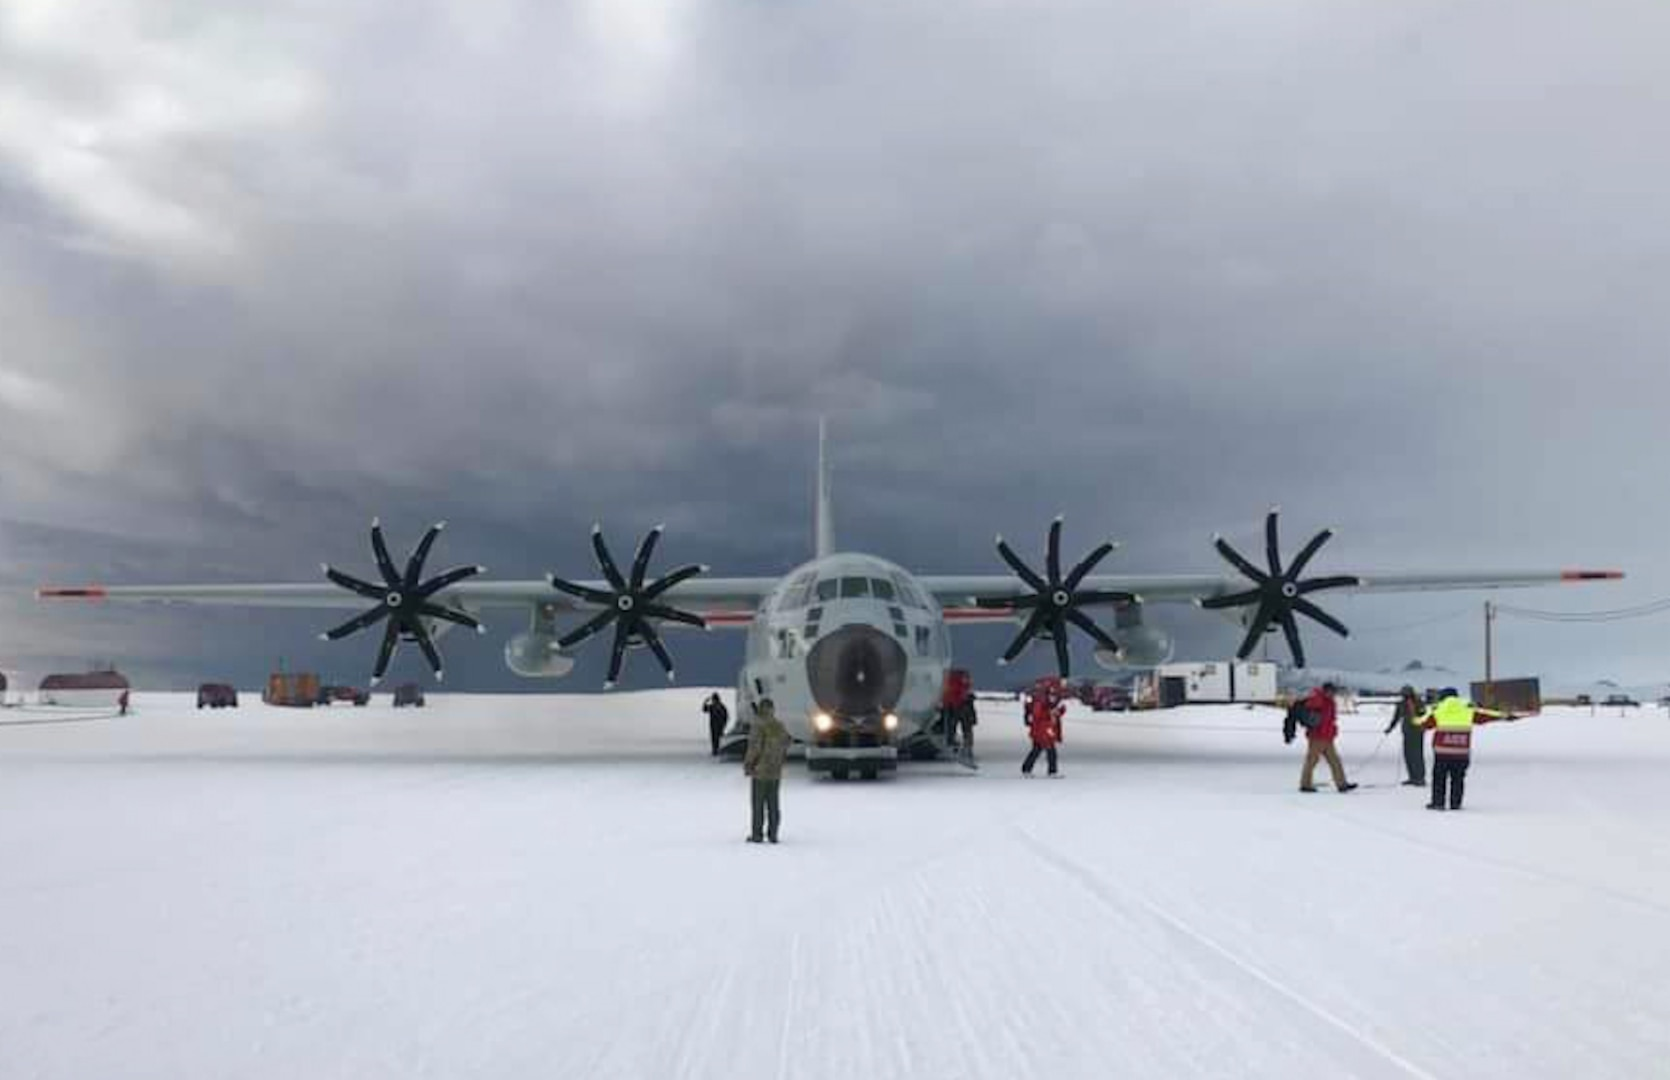 """Airmen prepare for the launch of an LC-130 """"skibird"""" assigned to the New York Air National Guard's 109th Airlift Wing in Antarctica Feb. 8, 2021, during a mission to support National Science Foundation research. The 109th Airlift Wing flies the largest ski-equipped aircraft in the world and will once again support science missions in Antarctica beginning in December 2021."""